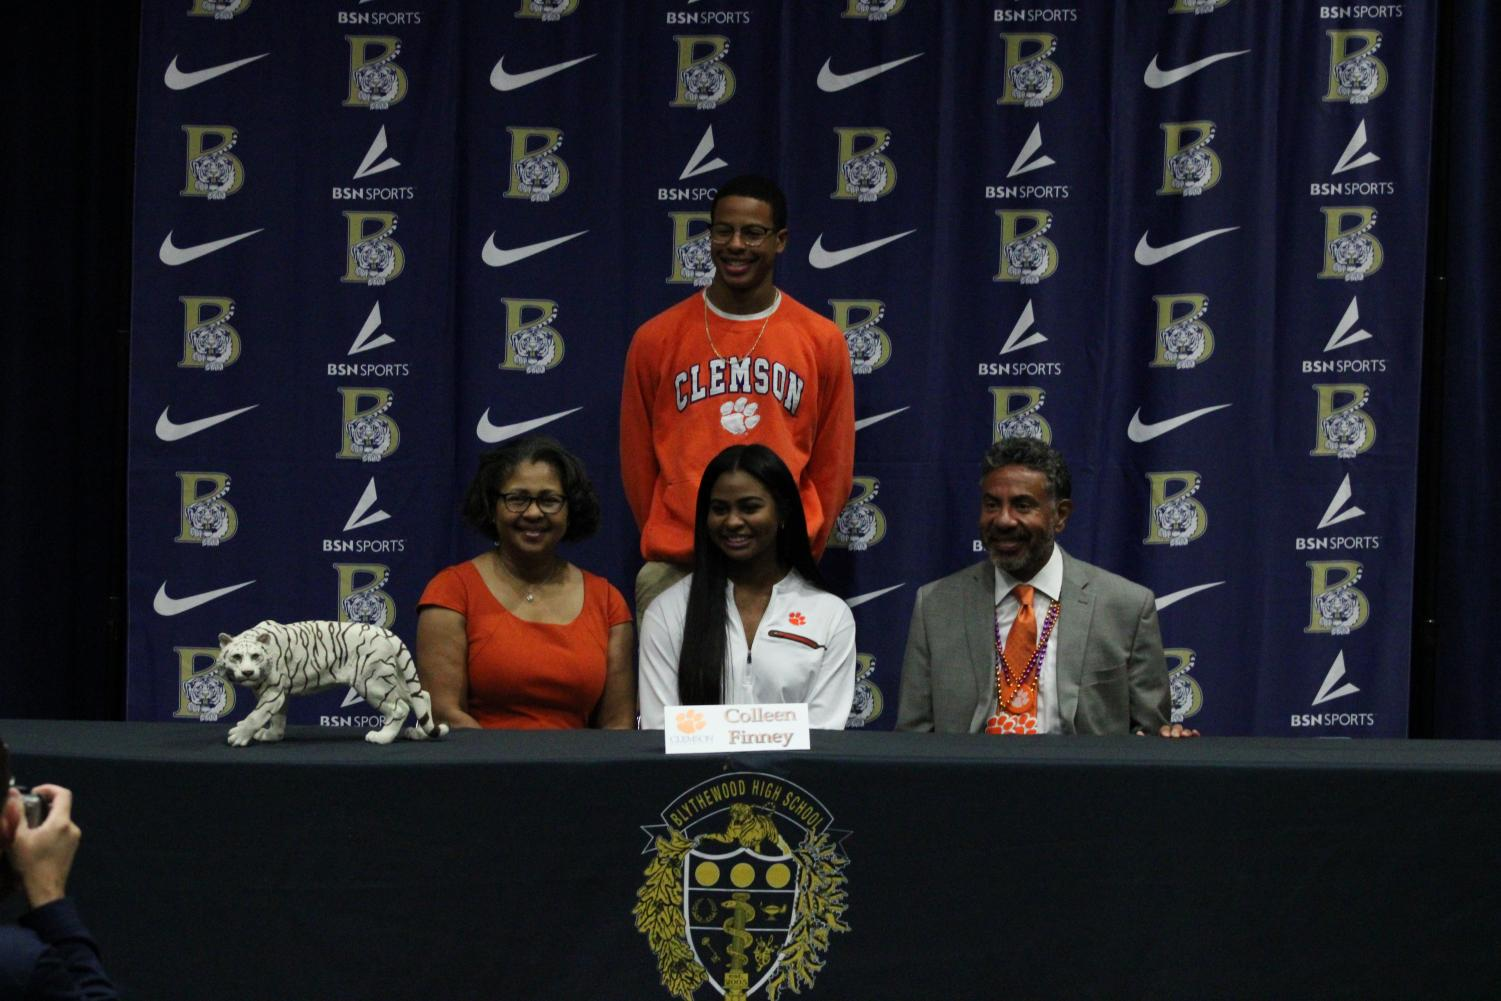 Colleen+Finney+signs+to+play+volleyball+at+Clemson+University.+